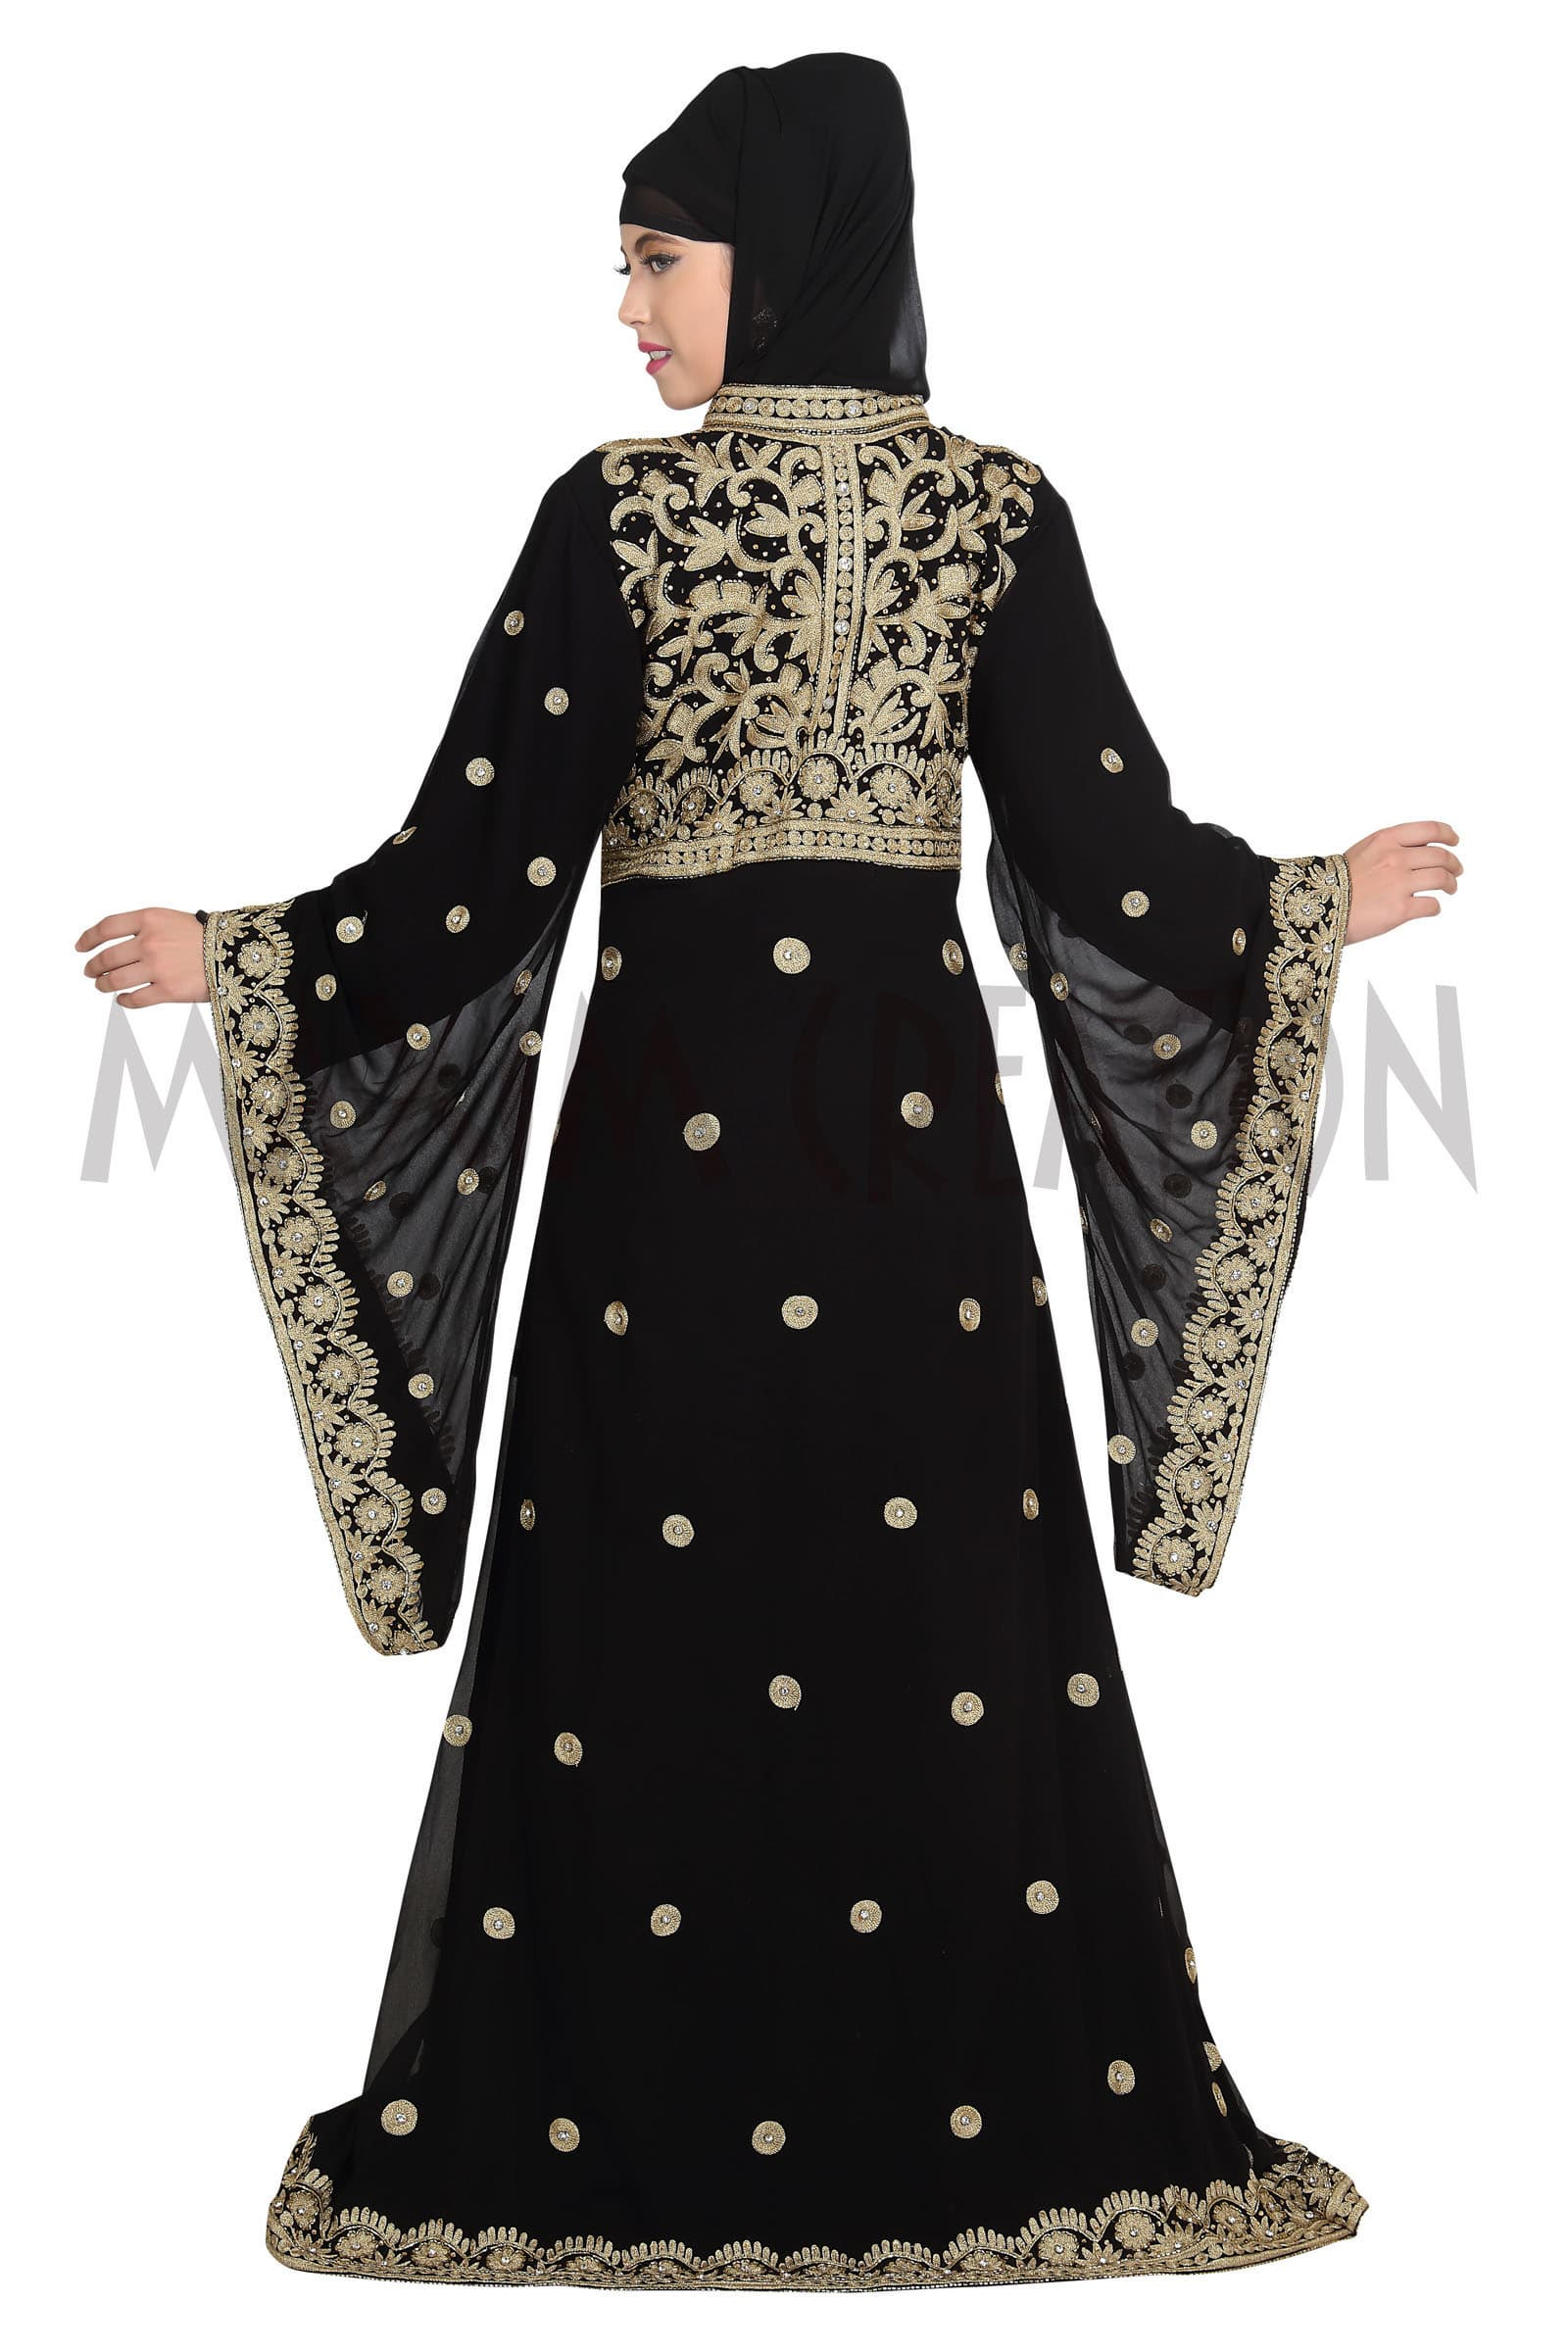 ELEGANT FANCY JILBAB ARABIAN ISLAMIC WEDDING GOWN 5516